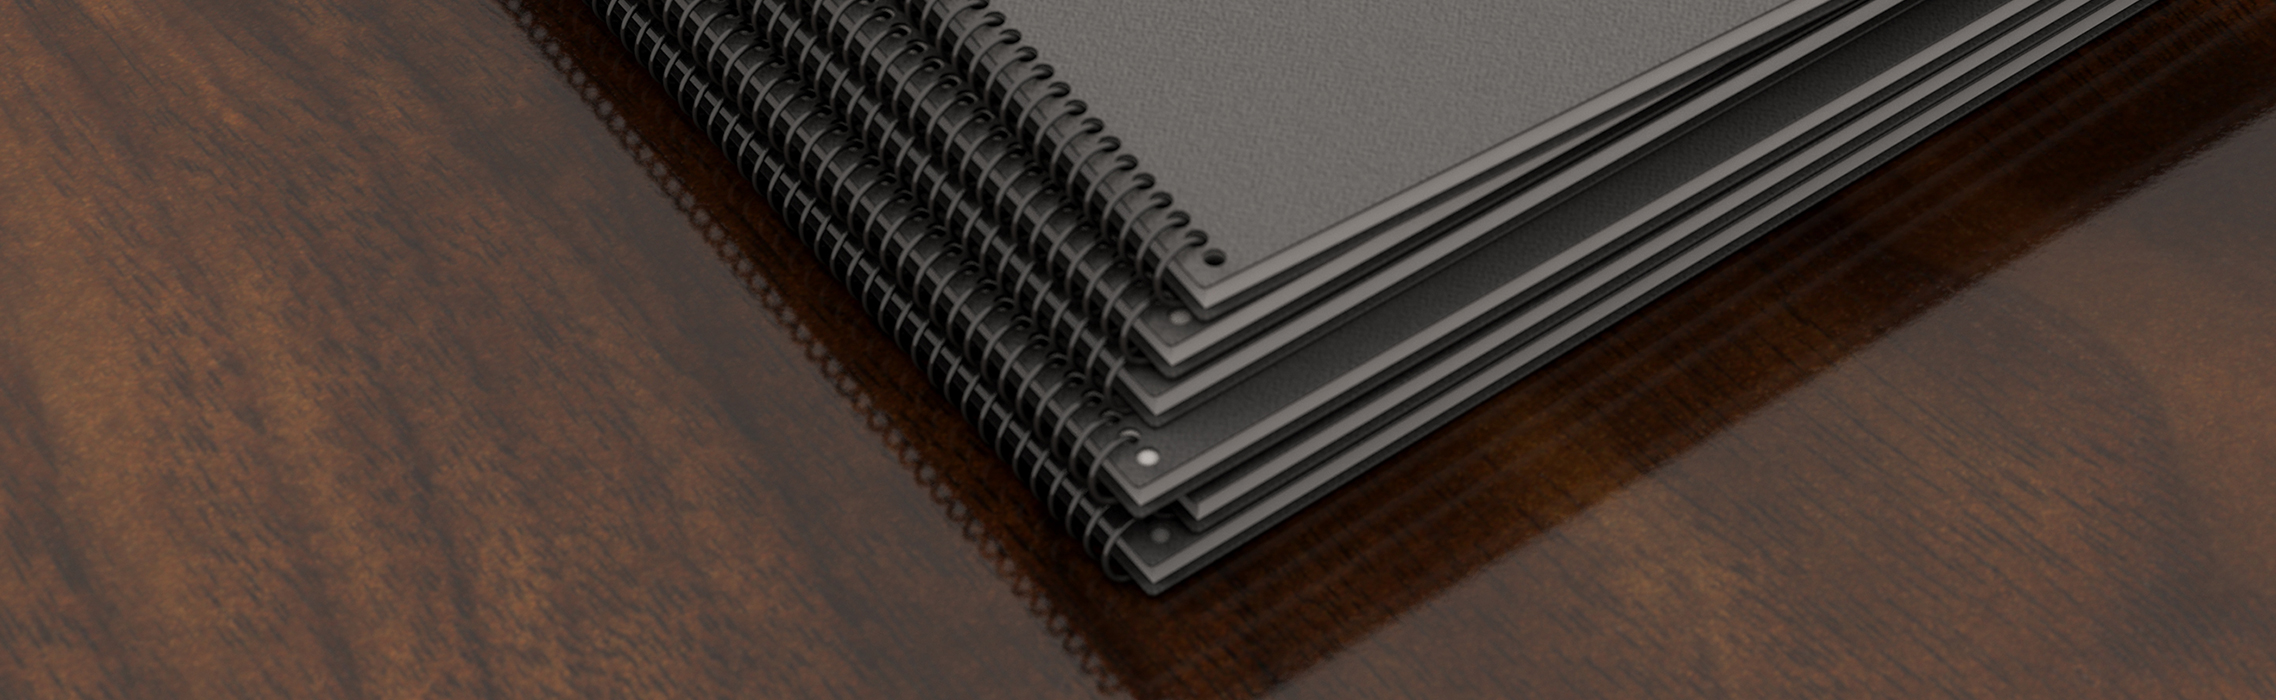 What Is A Wire Bound Booklet?